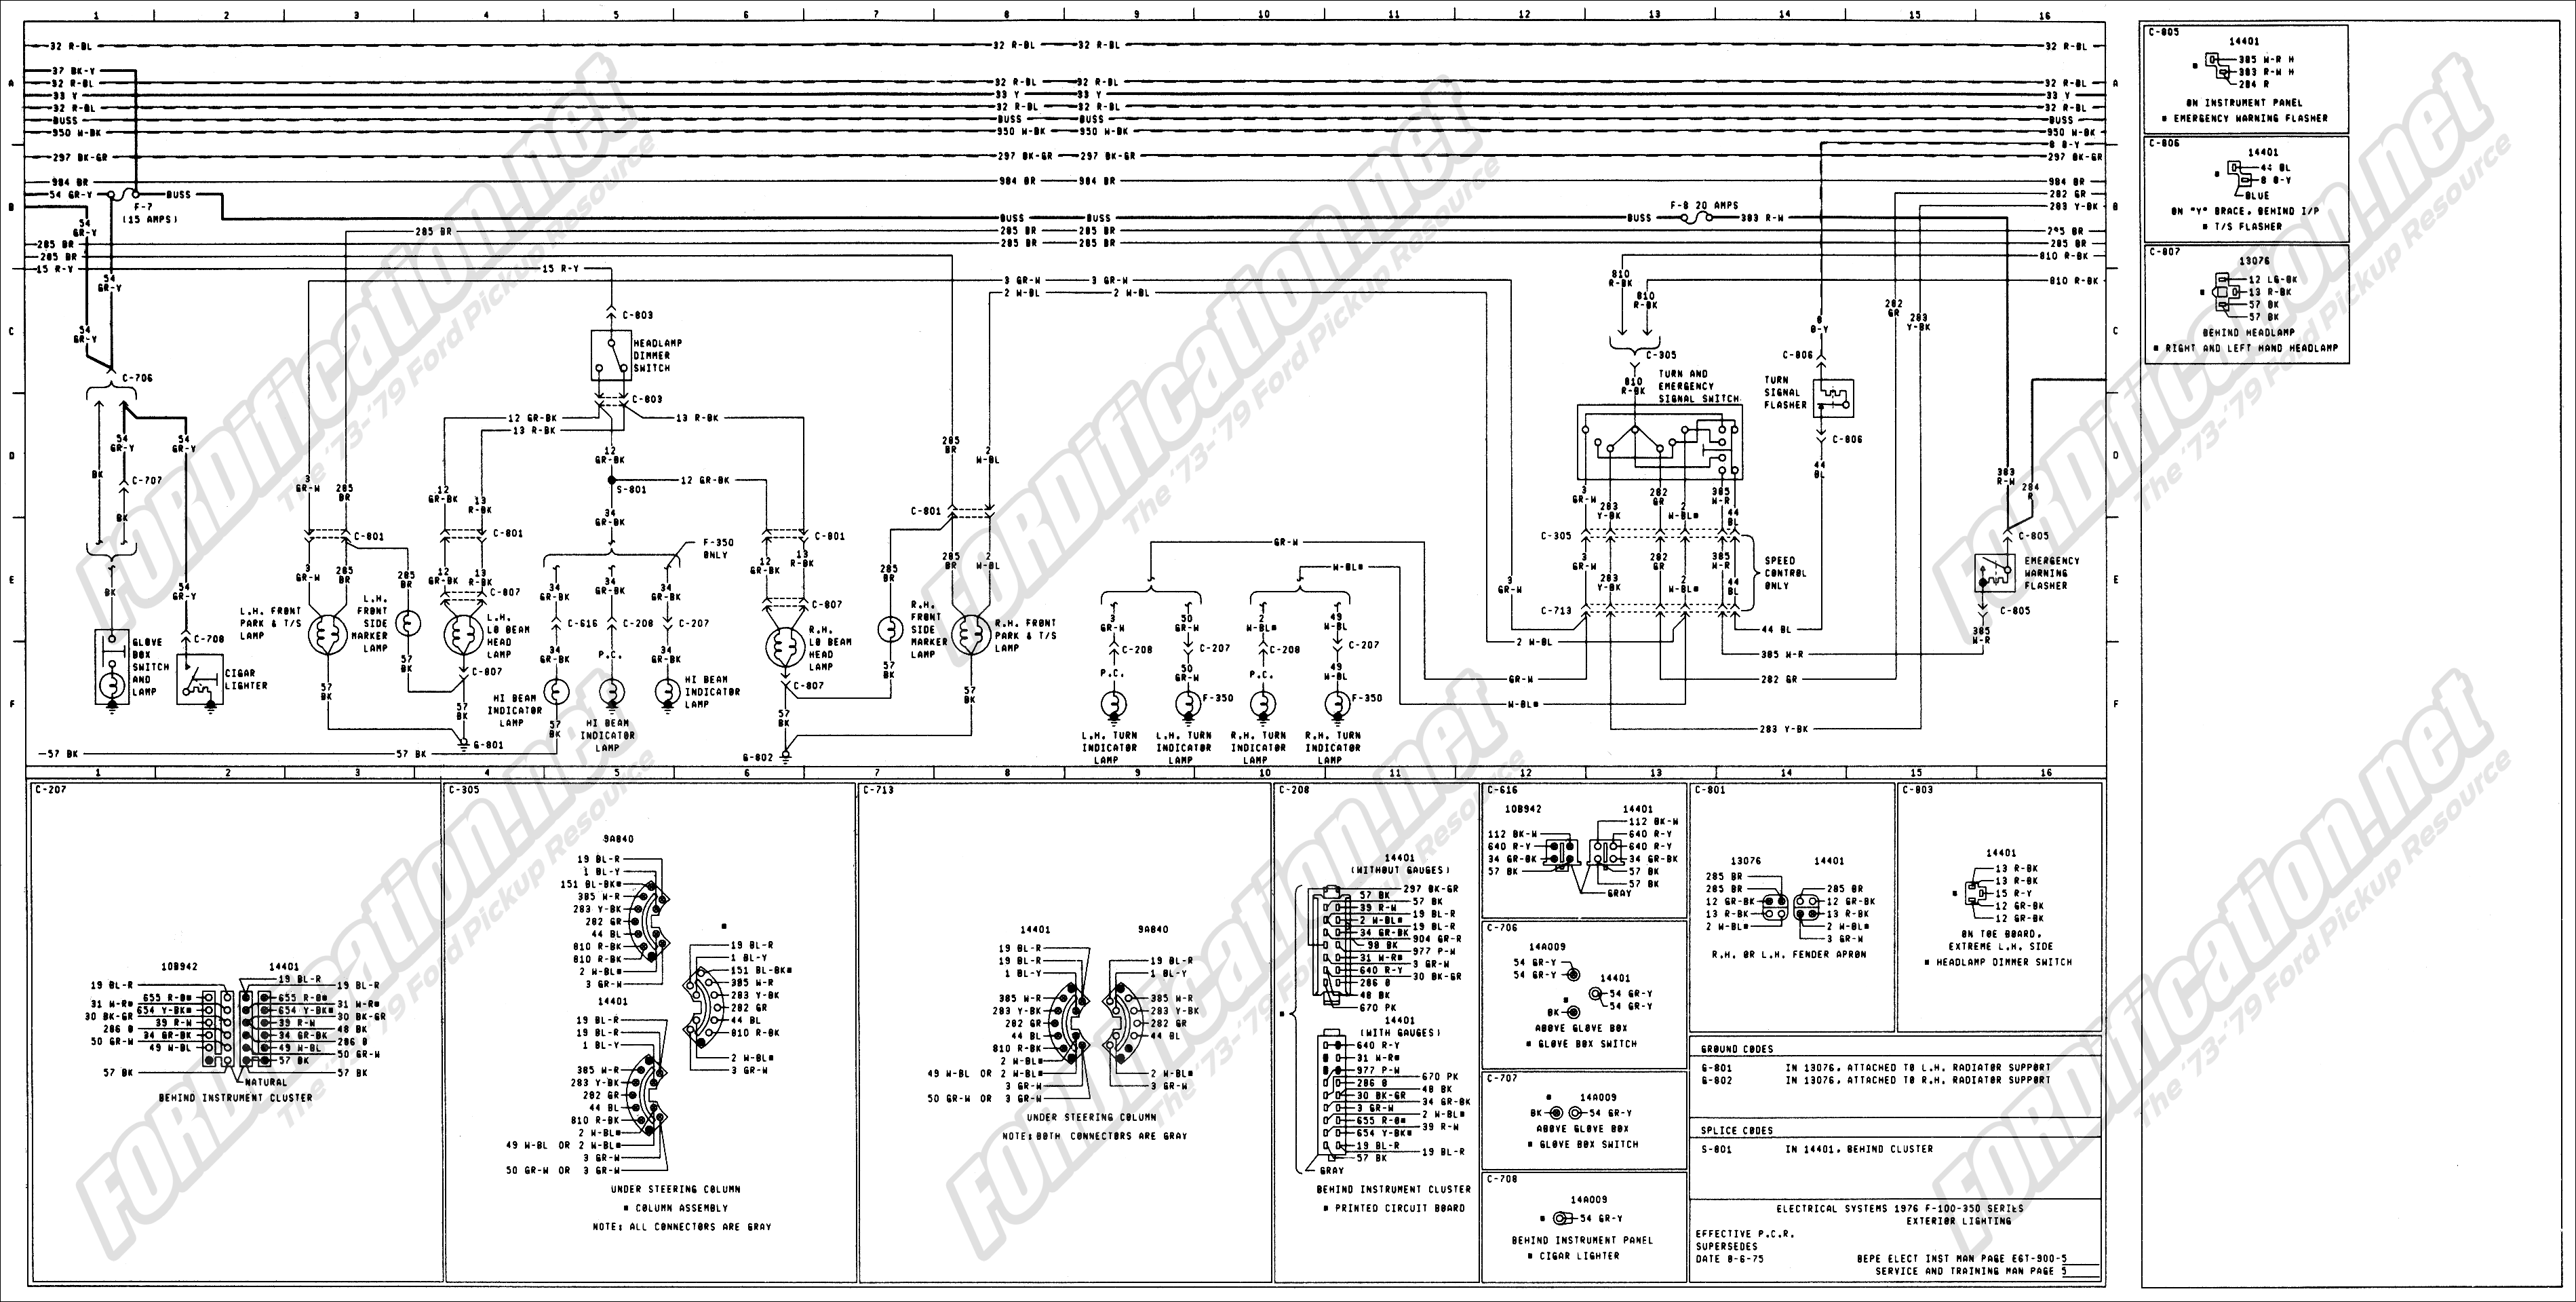 1973 1979 Ford Truck Wiring Diagrams & Schematics Fordification Net 73 Ford F100  Wiring Diagram 1974 Ford F100 Wiring Diagram